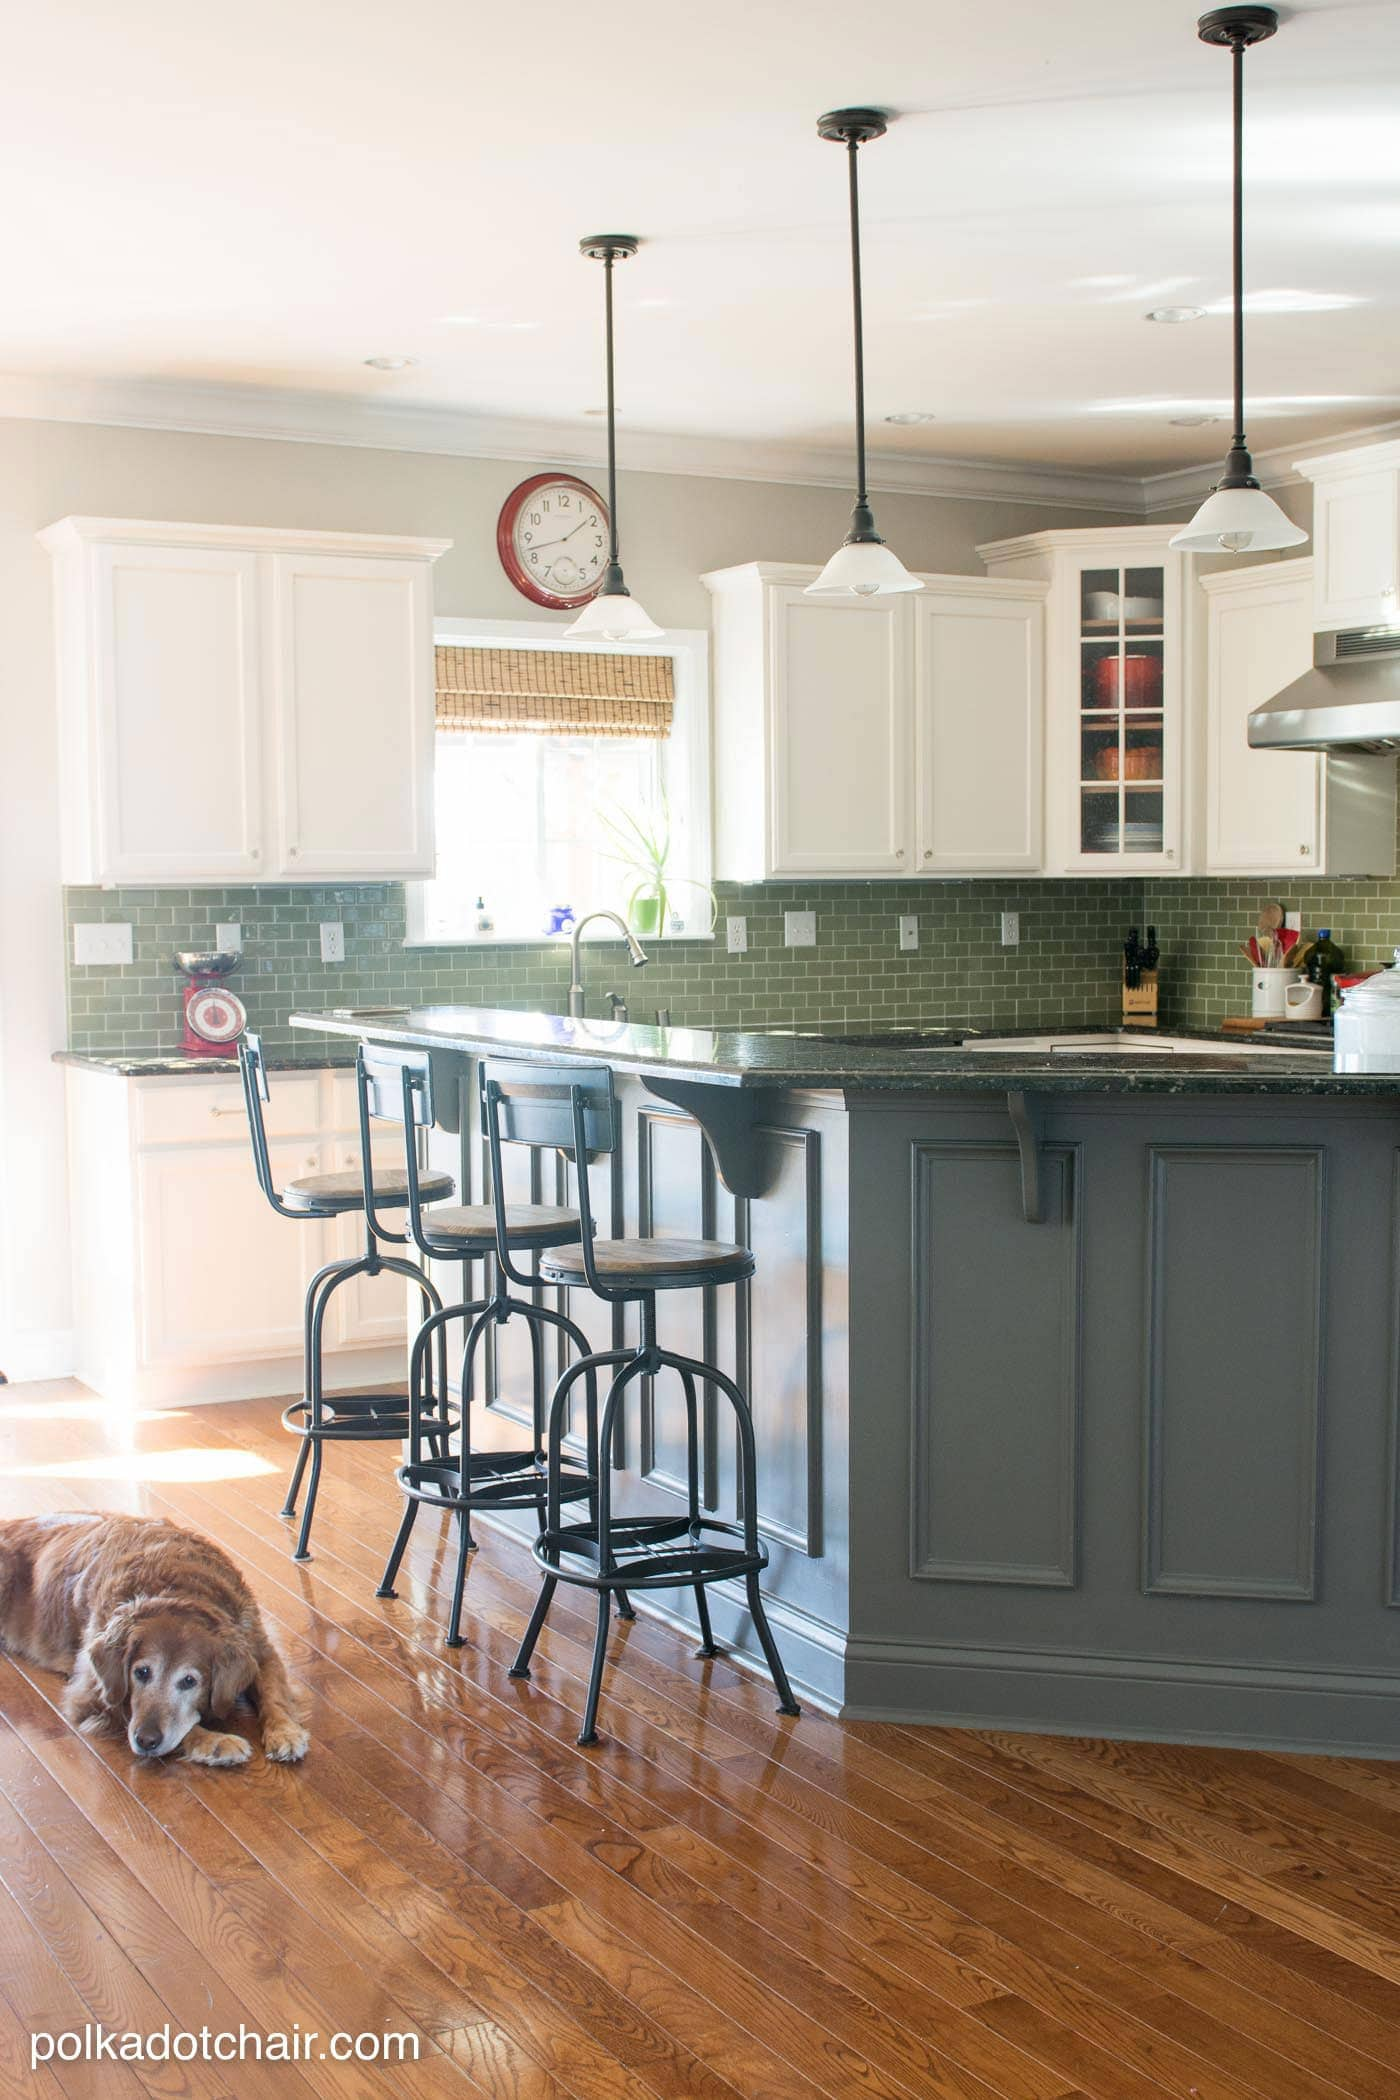 painted kitchen cabinet ideas kitchen makeover reveal repaint kitchen cabinets Before and After Photos of a Kitchen that had it s Cabinets Painted White lots of